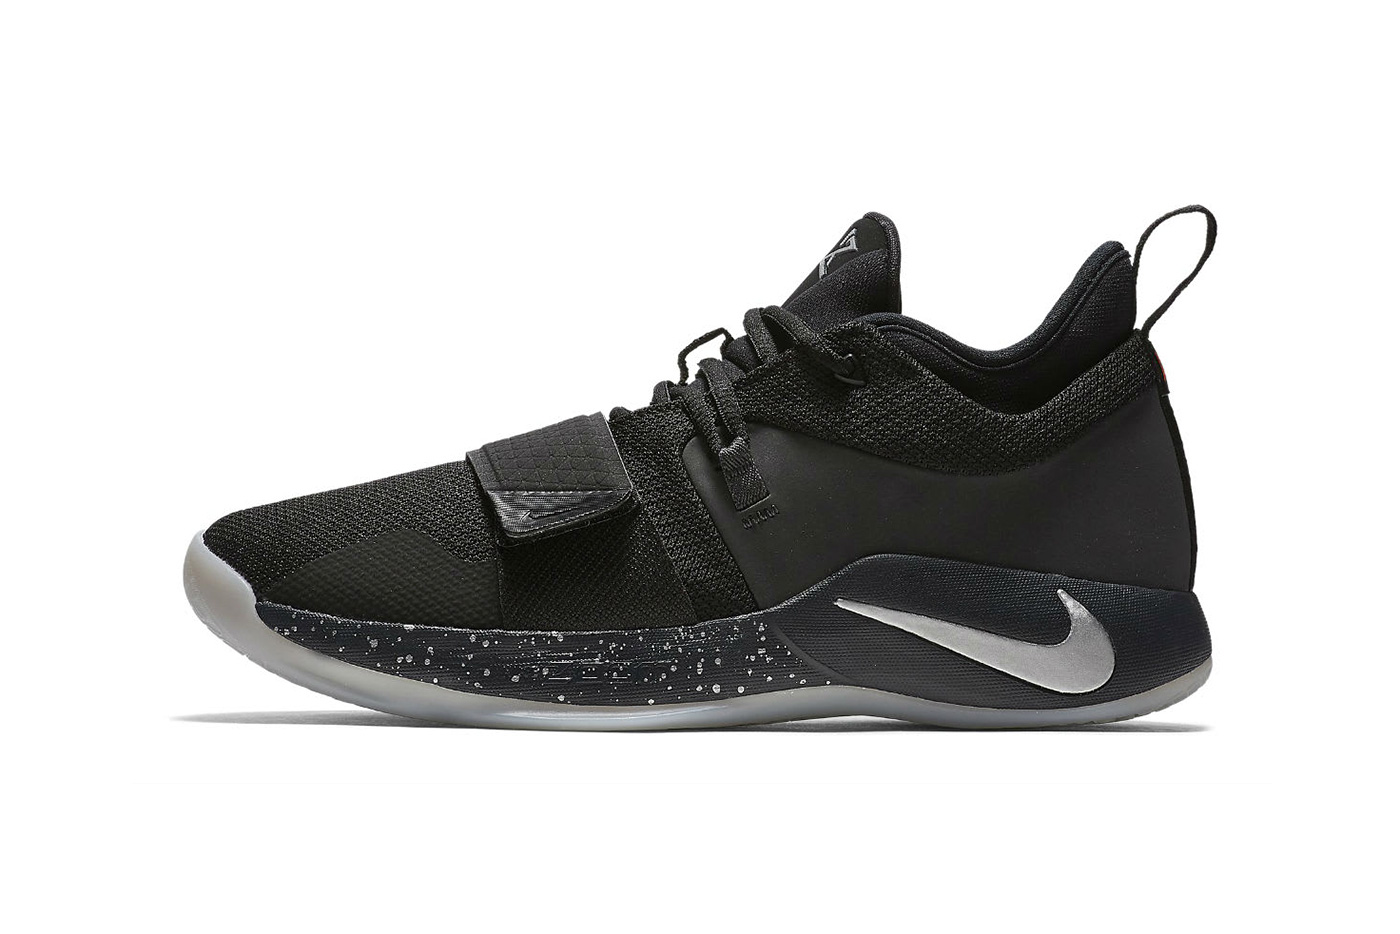 Nike PG 2.5 (Black/Pure Platinum-Anthracite)